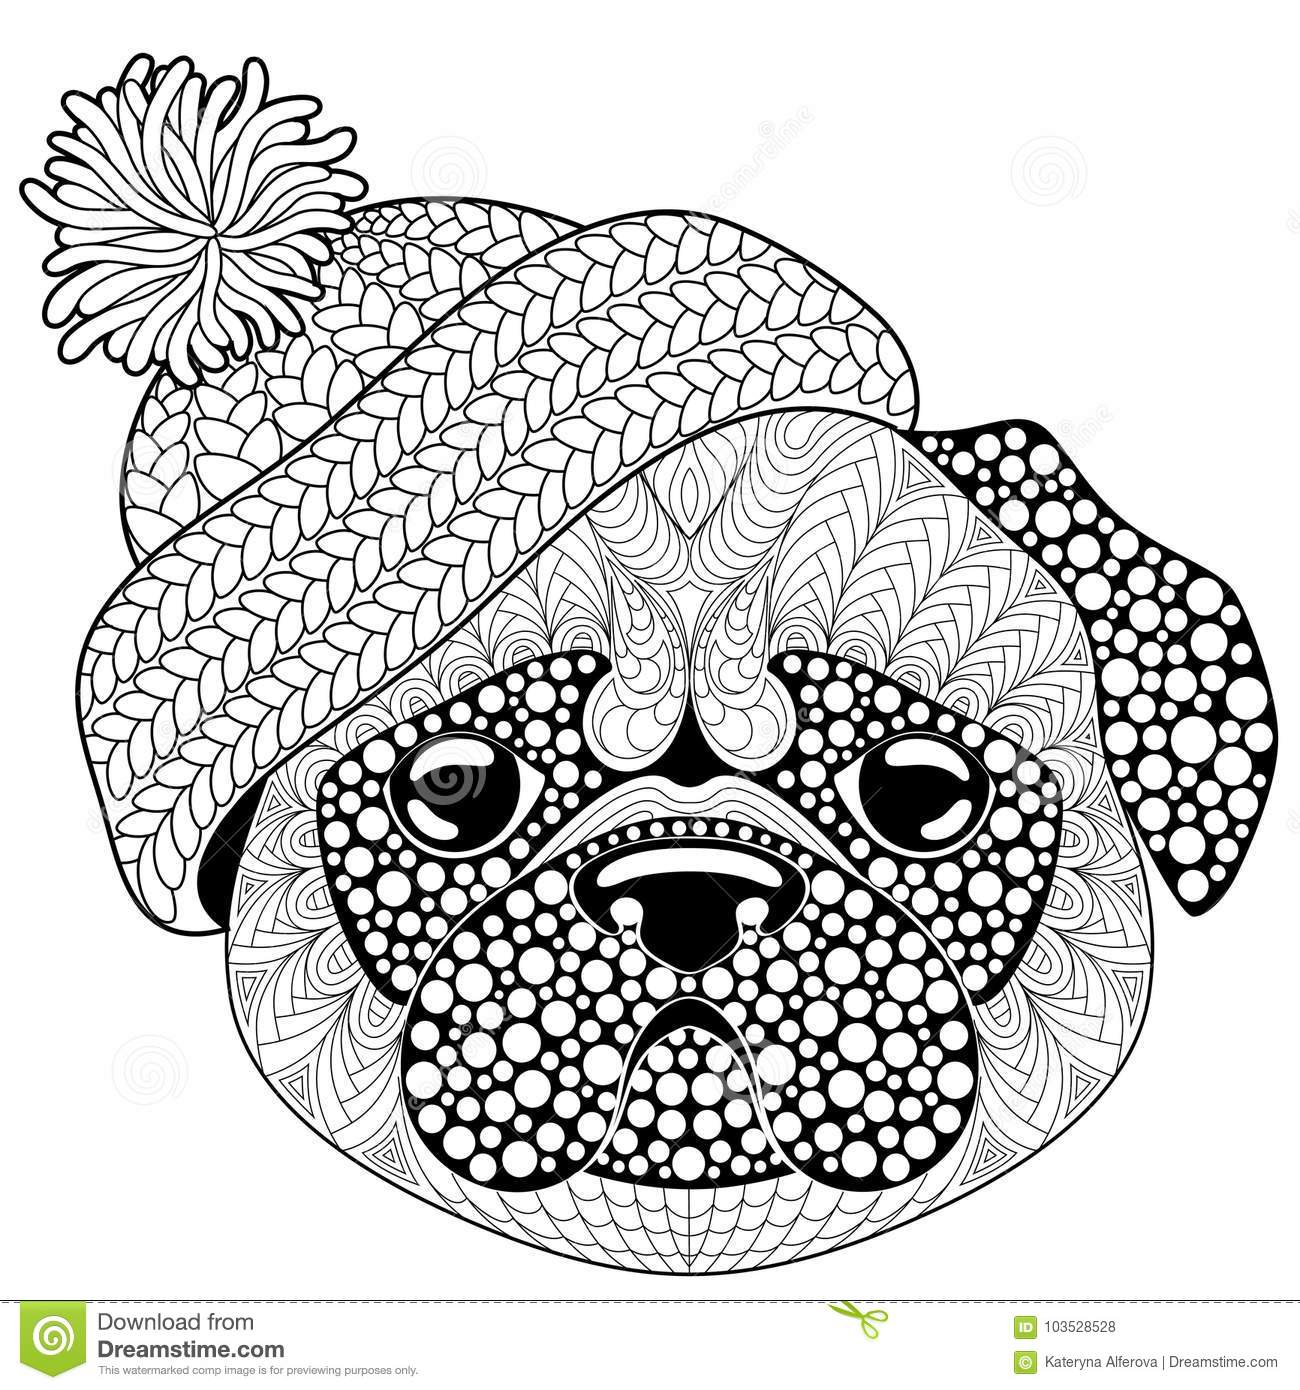 Printable Pug Coloring Pages - Coloring Home | 1390x1300